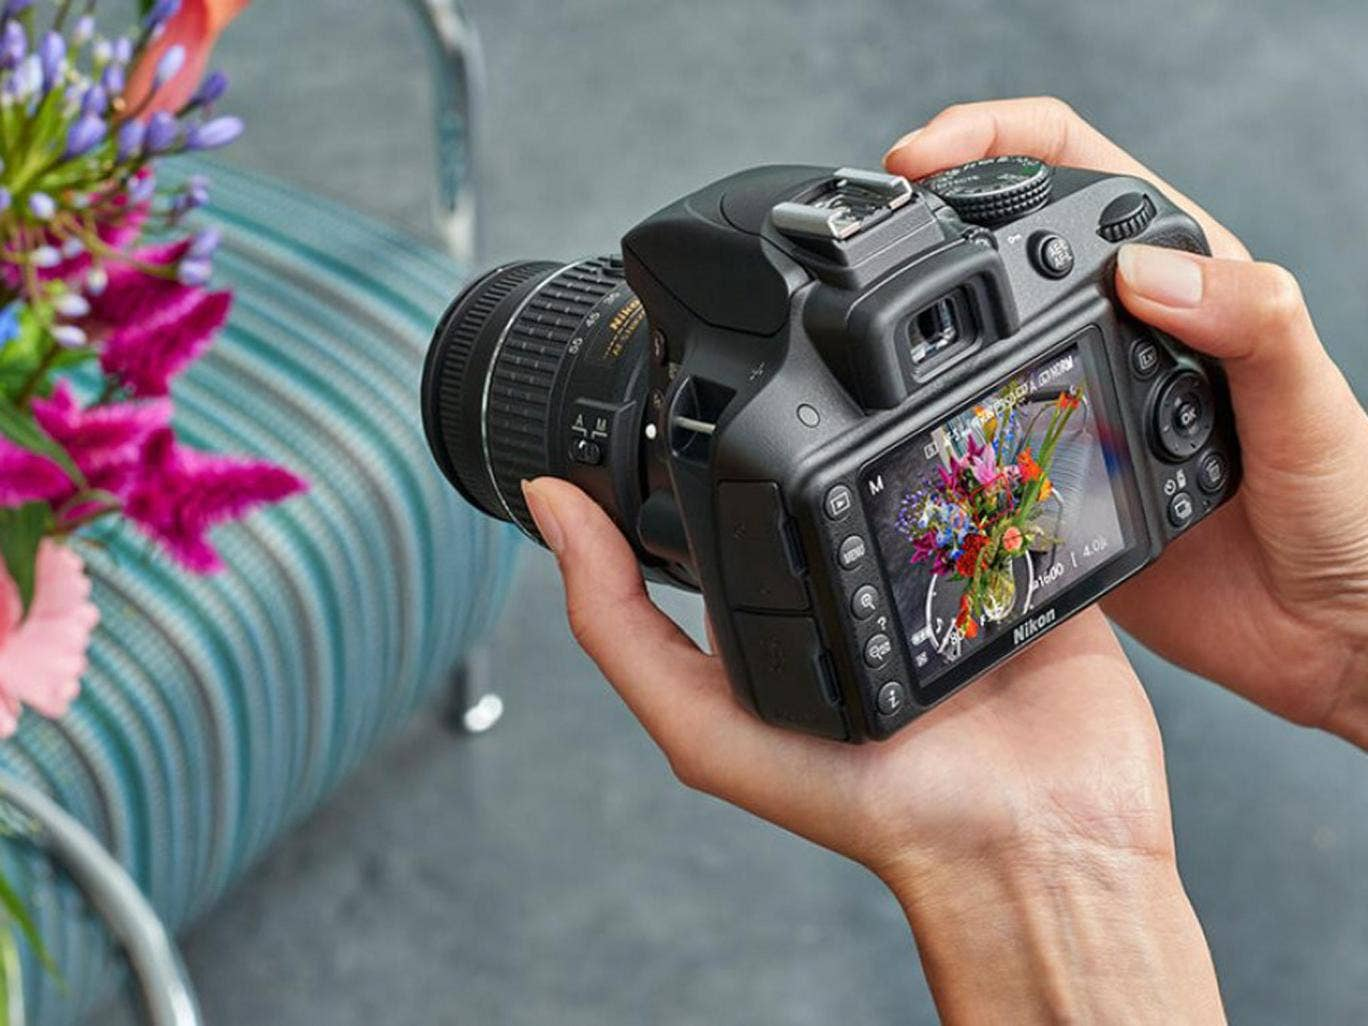 Image result for Graphics designers holding a camera